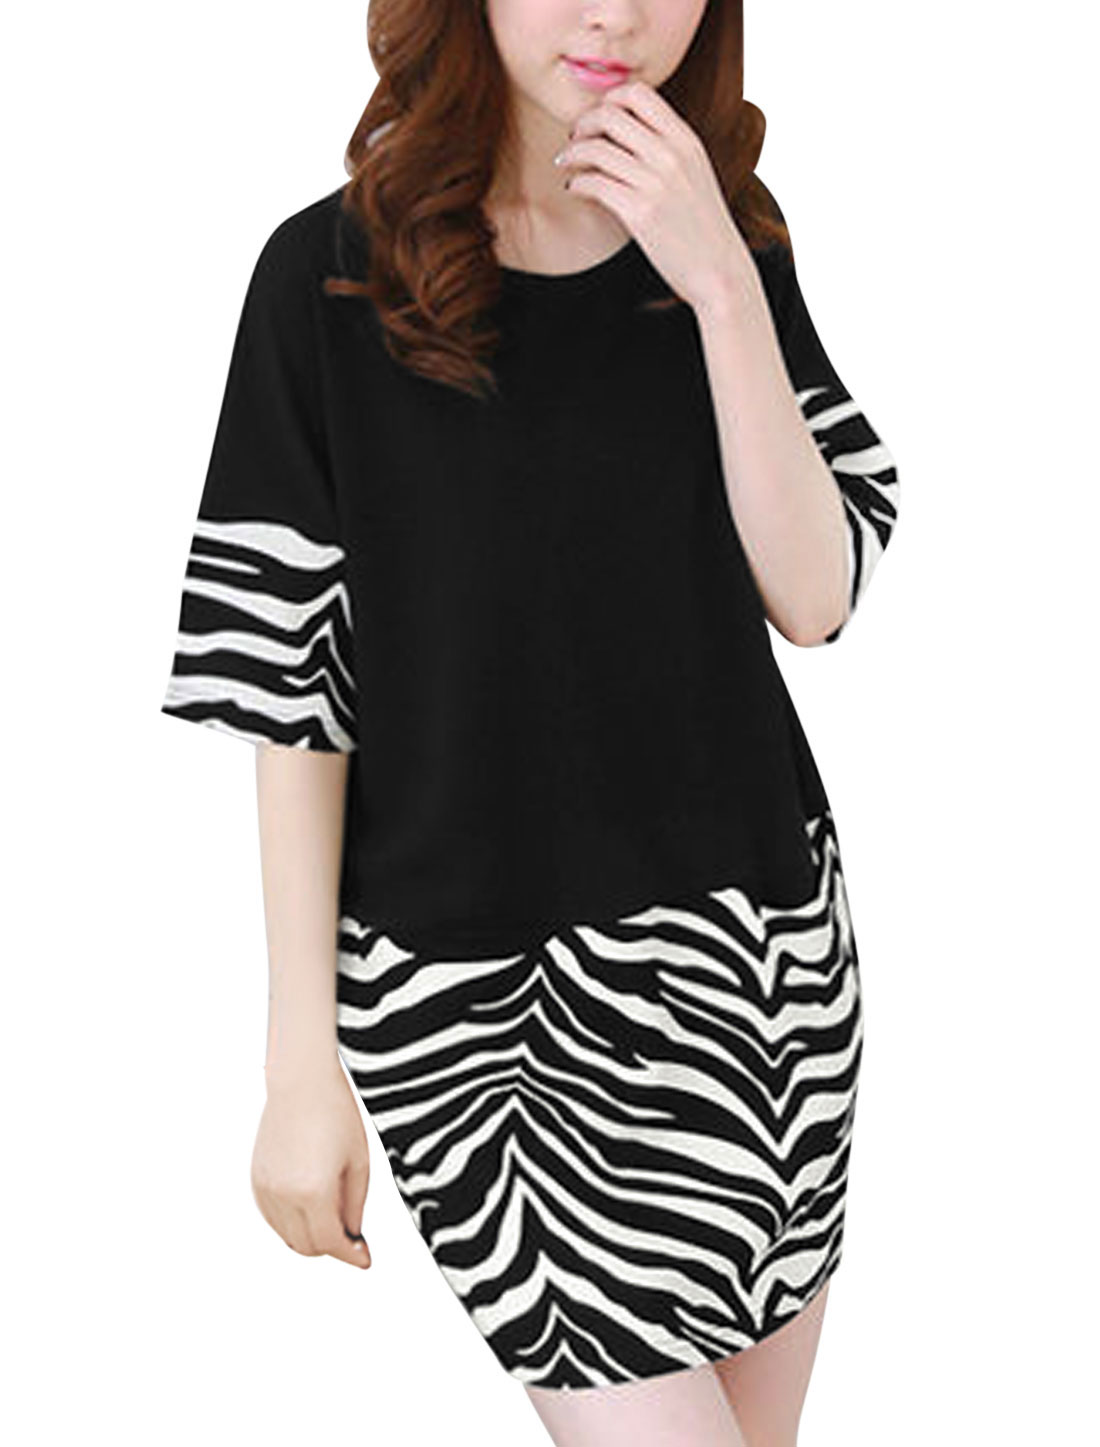 Elbow Sleeves Zebra-Stripe Prints Leisure Dress for Women Black M